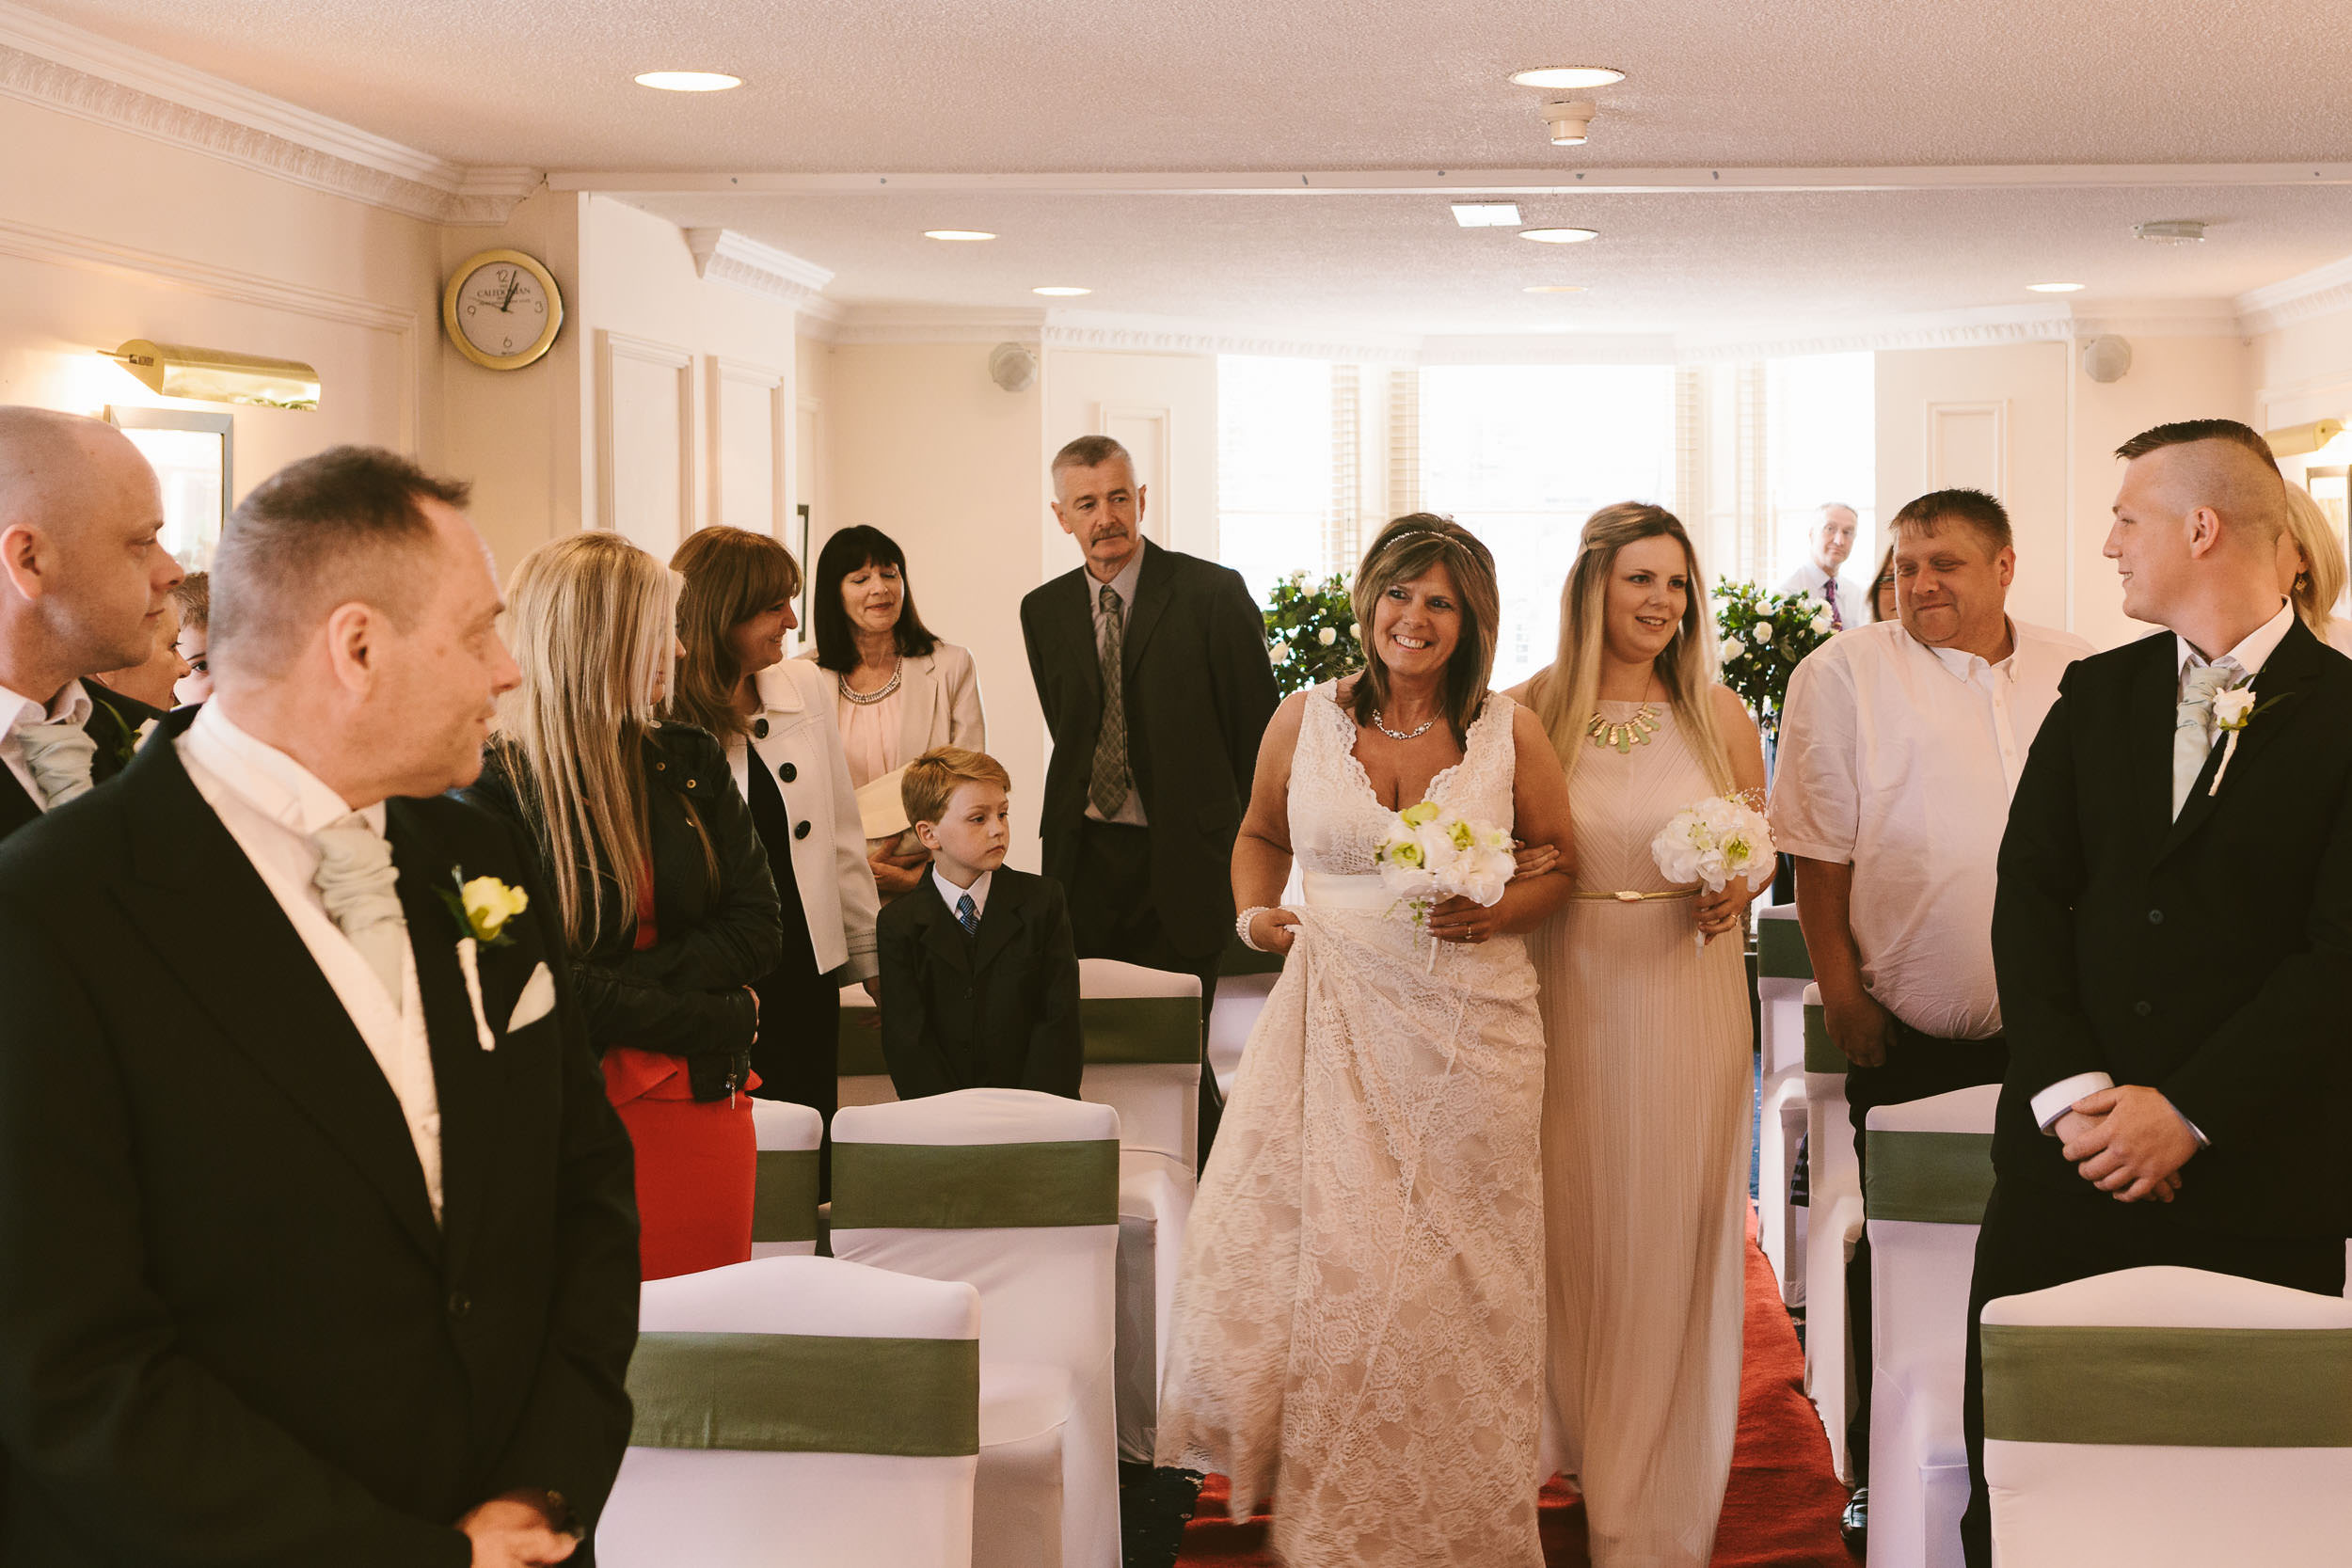 The bride walks down the aisle and makes eye contact with the groom